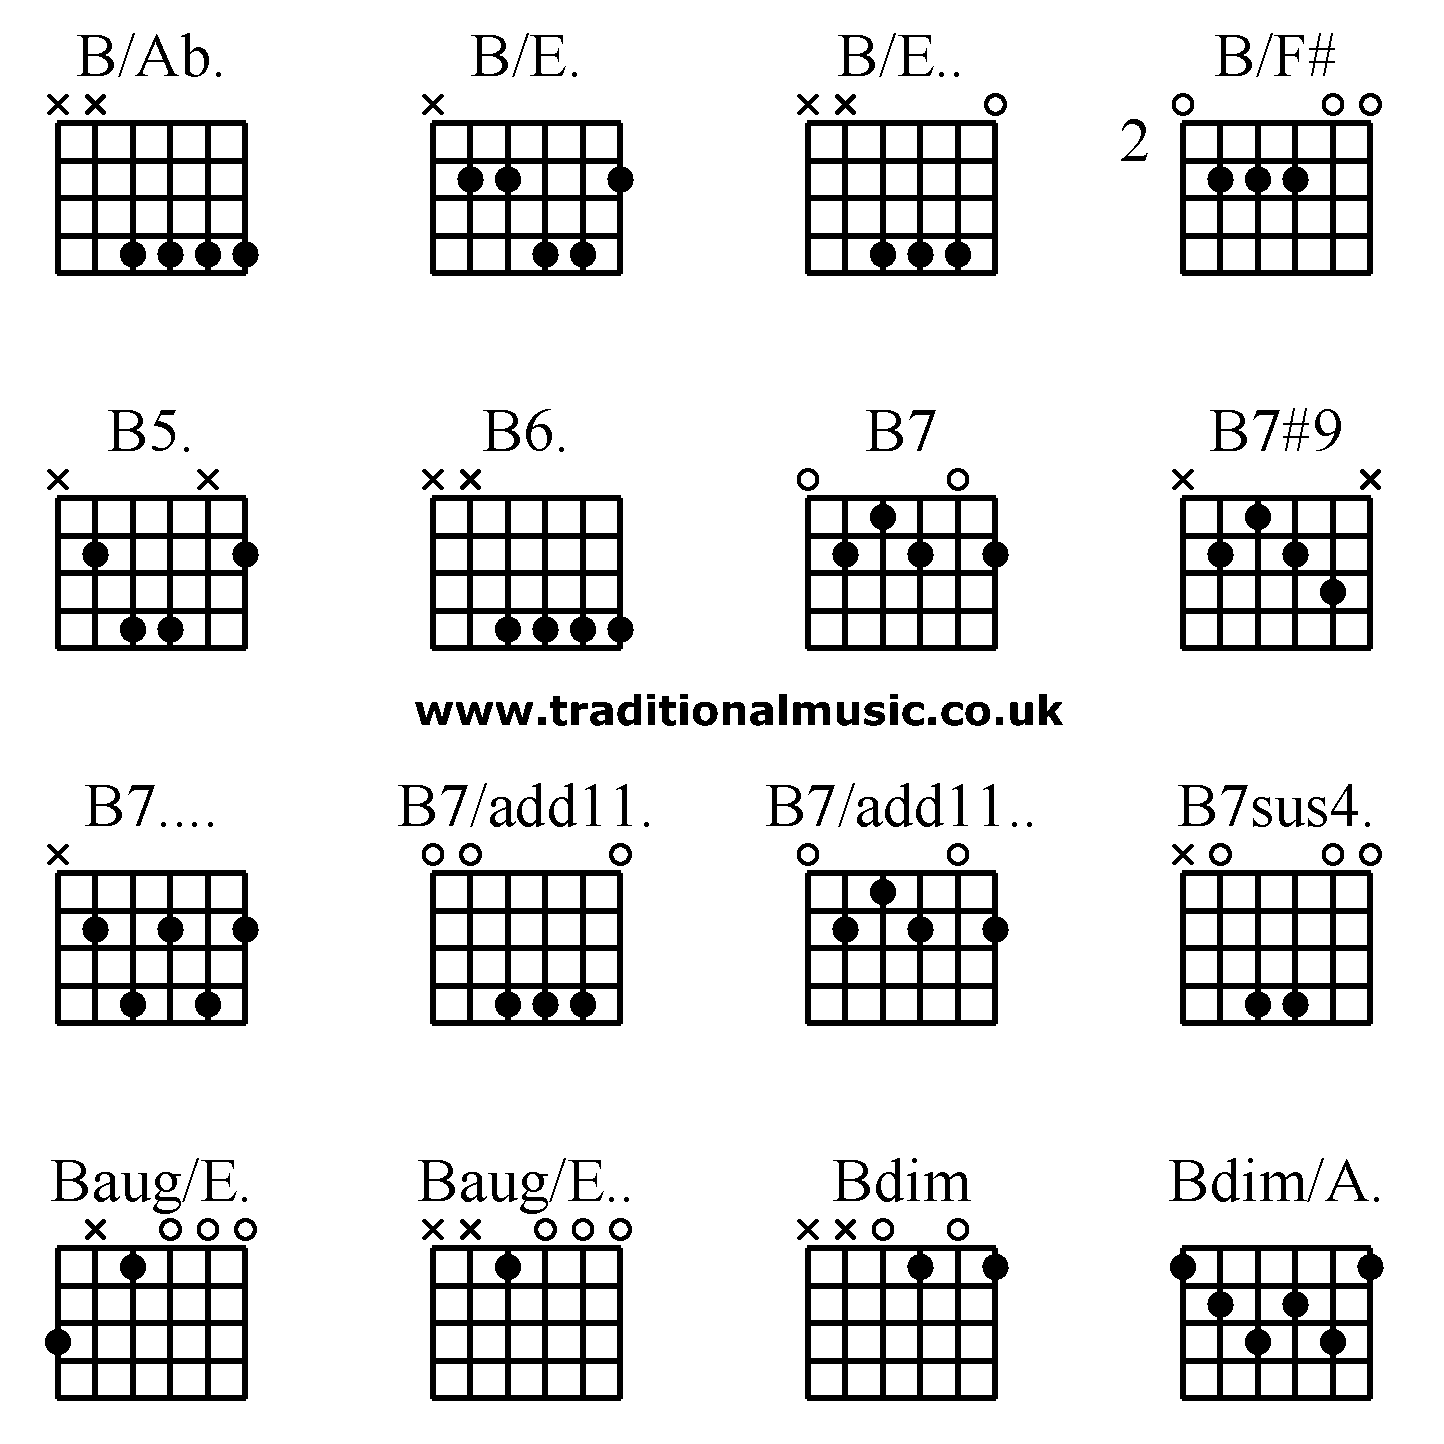 Advanced Guitar Chords B Ab B E B E B F B5 B6 B7